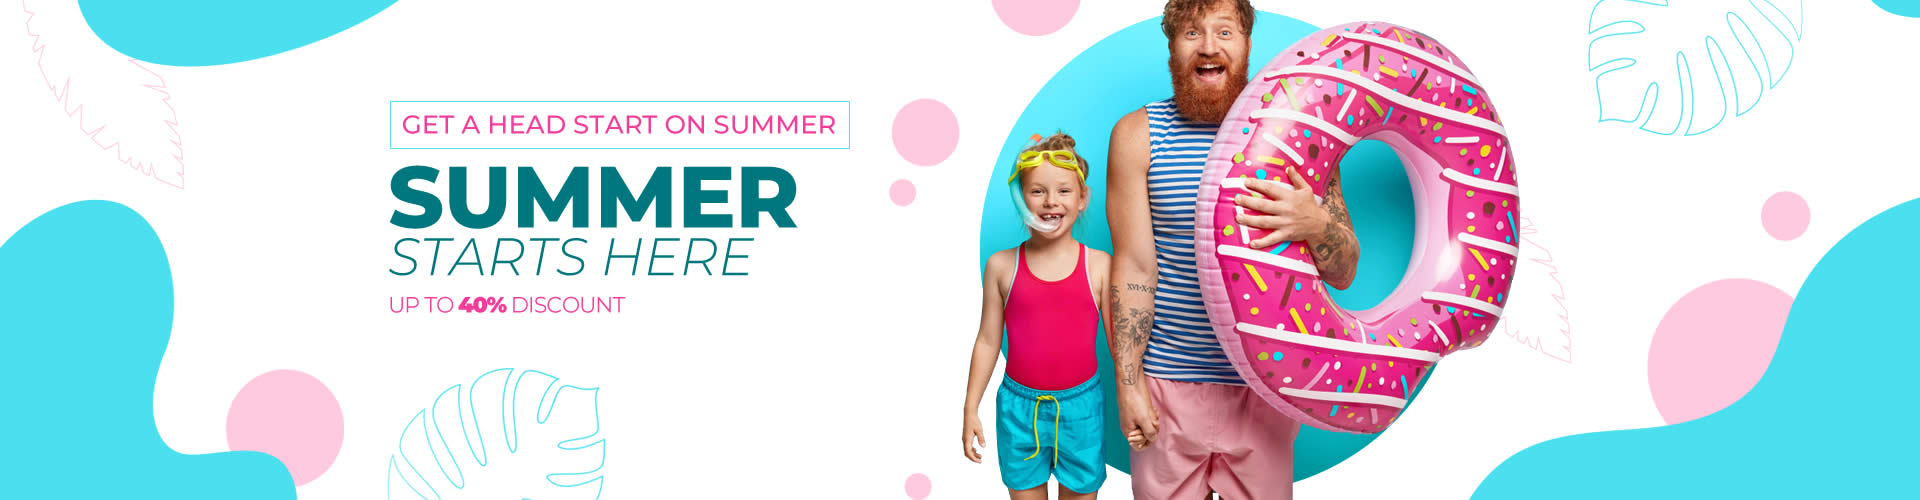 summer starts here, up to 40% discount